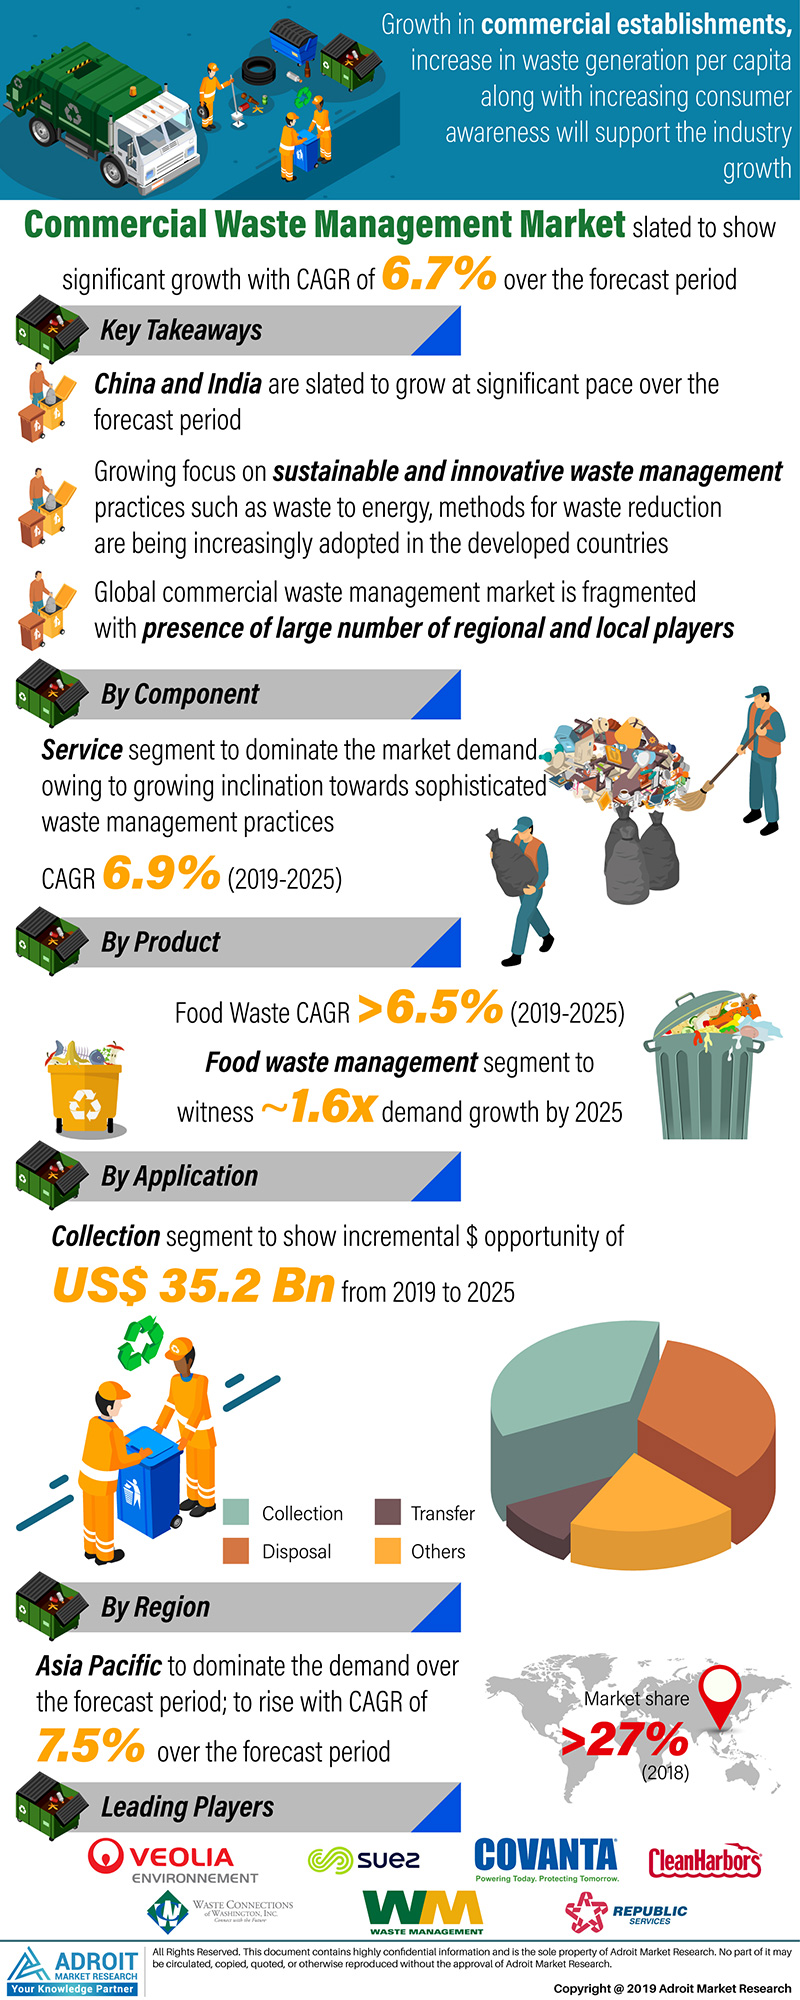 Global Commercial Waste Management Market Size 2017 By Component, Product, Application, Region and Forecast 2019 to 2025